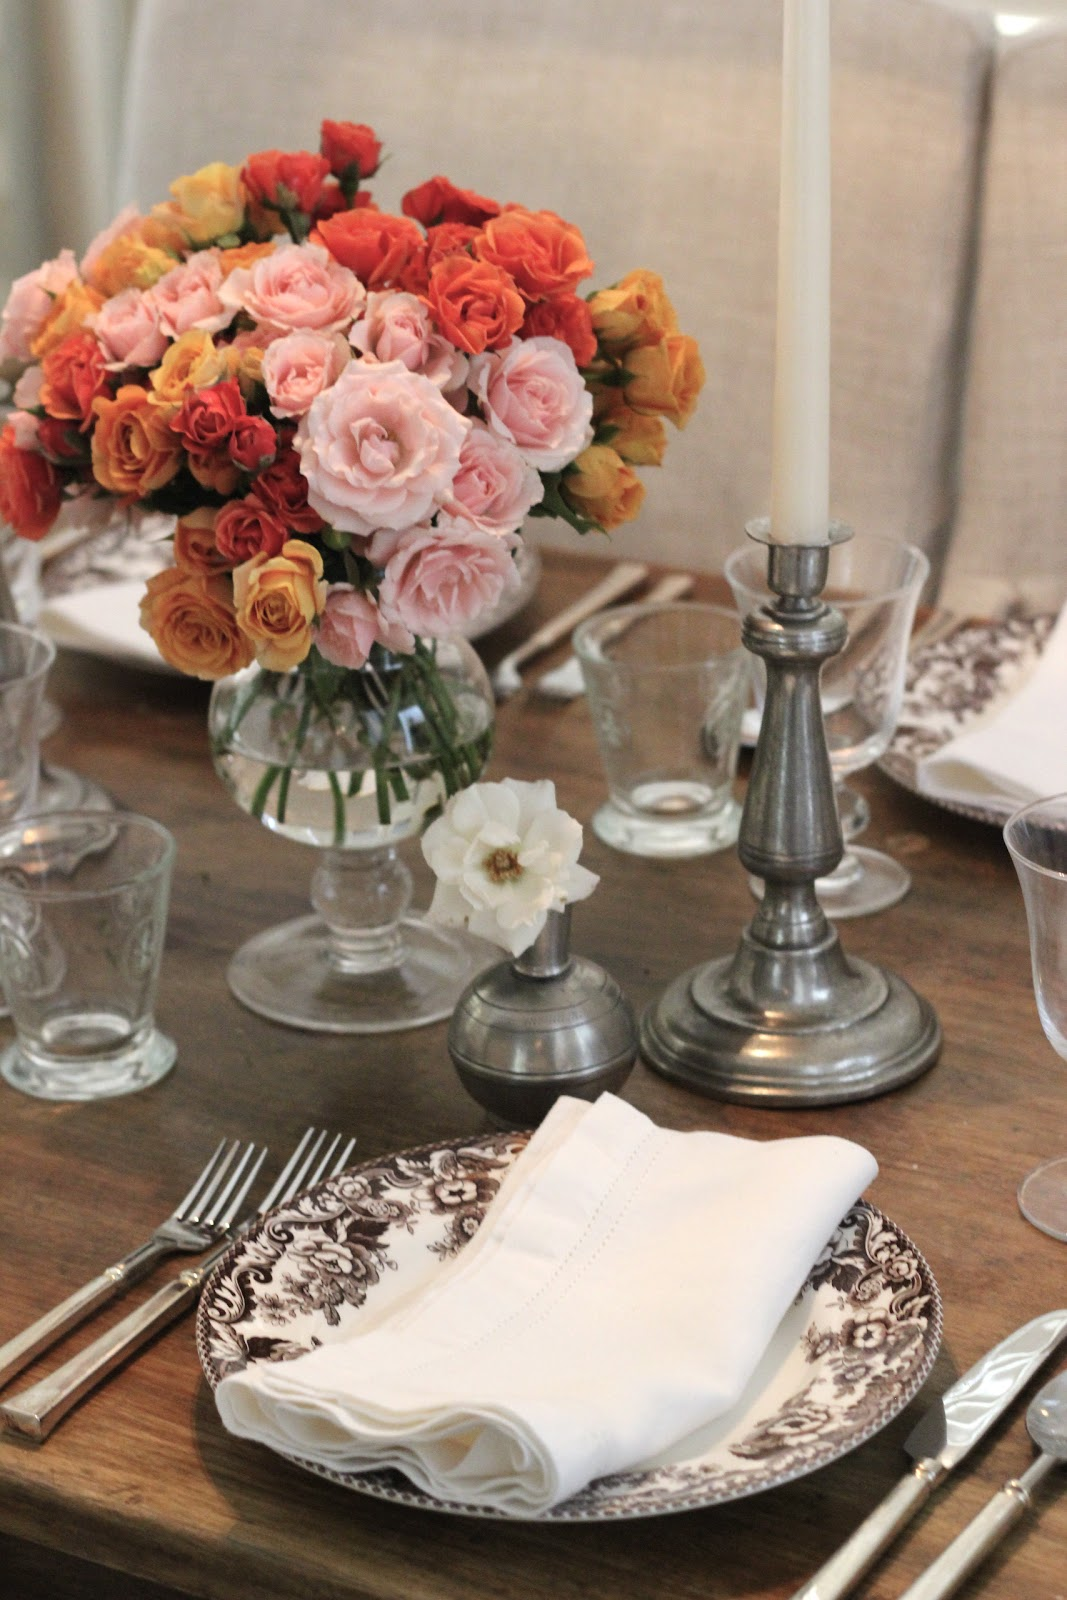 Valentineu0027s Day Dinner Party Table Setting | Coral, Orange U0026 Pale Pink Roses